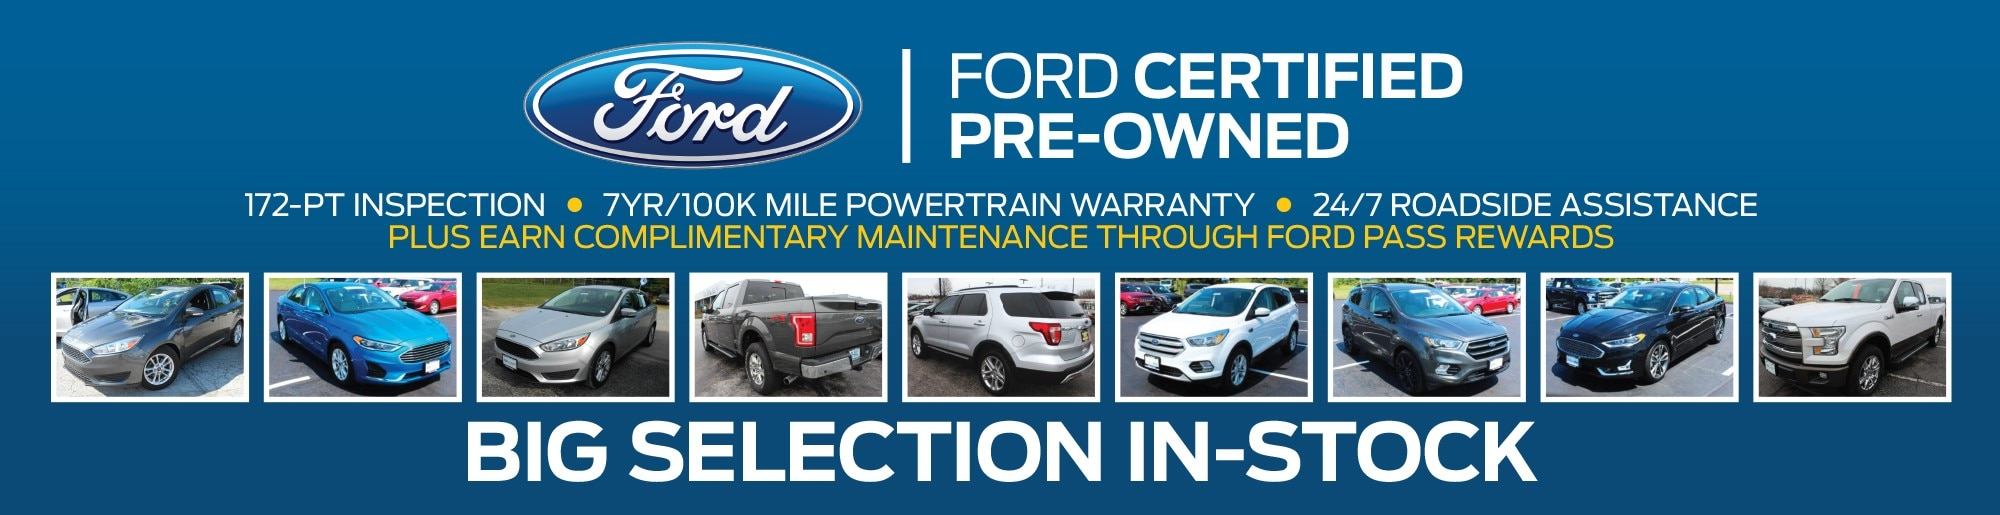 Paul Cerame Kia >> New Ford And Used Car Dealer In Florissant Paul Cerame Ford